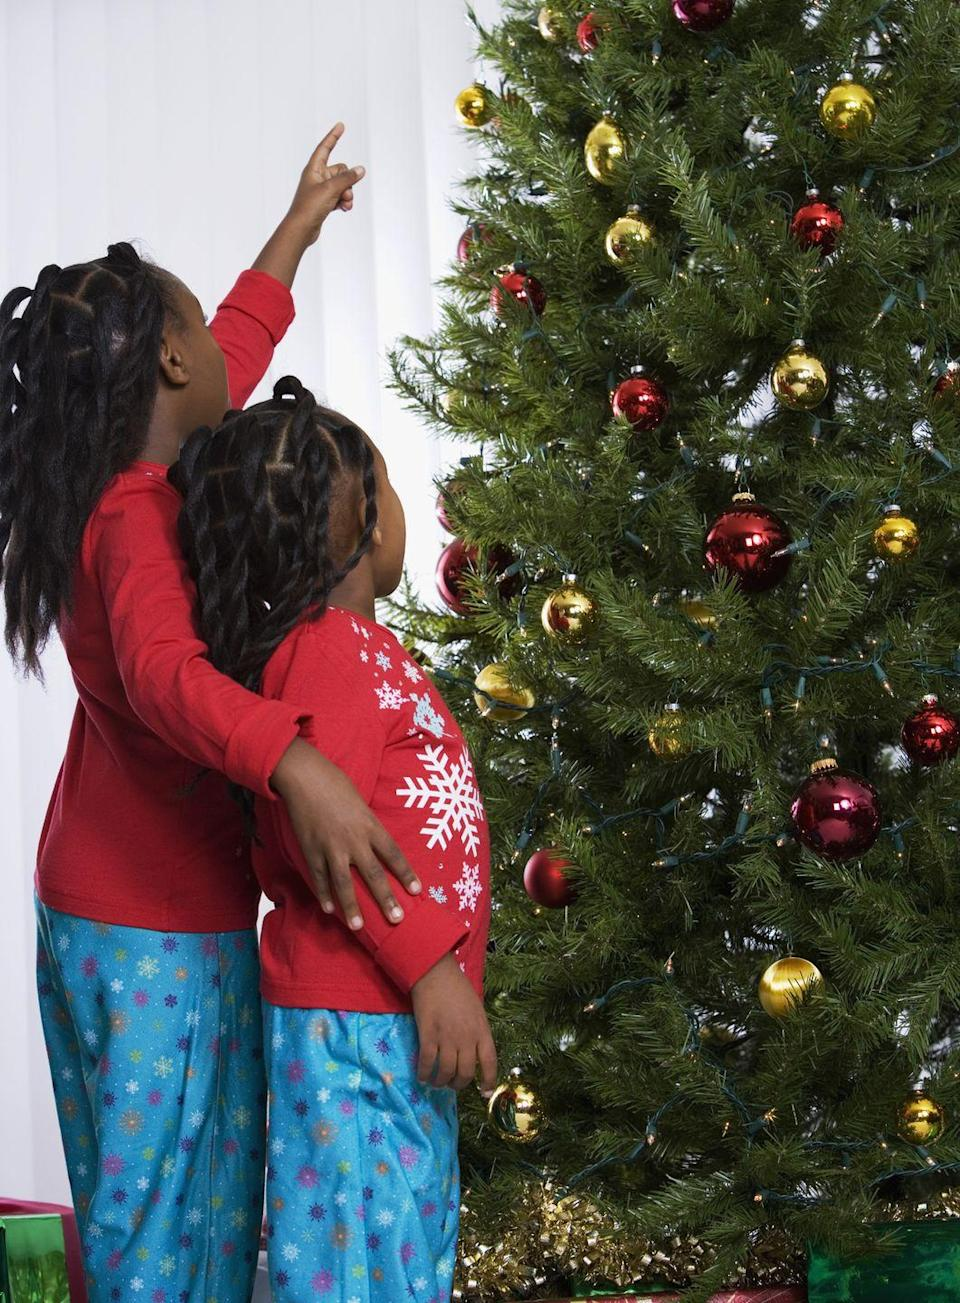 """<p>Keep it low key by cozying up by the fire in <a href=""""https://www.countryliving.com/shopping/g4956/matching-family-christmas-pajamas/"""" rel=""""nofollow noopener"""" target=""""_blank"""" data-ylk=""""slk:matching family Christmas pajamas"""" class=""""link rapid-noclick-resp"""">matching family Christmas pajamas</a>. There are plenty of affordable—and adorable!—options for everyone (including furry friends) making them the perfect uniform for a family photo. </p><p><a class=""""link rapid-noclick-resp"""" href=""""https://www.amazon.com/s/ref=nb_sb_ss_i_2_19?url=search-alias%3Daps&field-keywords=matching+christmas+pajamas&sprefix=matching+christmas+%2Cgrocery%2C127&crid=2201M58B1MH0T&tag=syn-yahoo-20&ascsubtag=%5Bartid%7C10050.g.25411840%5Bsrc%7Cyahoo-us"""" rel=""""nofollow noopener"""" target=""""_blank"""" data-ylk=""""slk:SHOP MATCHING PAJAMAS"""">SHOP MATCHING PAJAMAS</a></p>"""